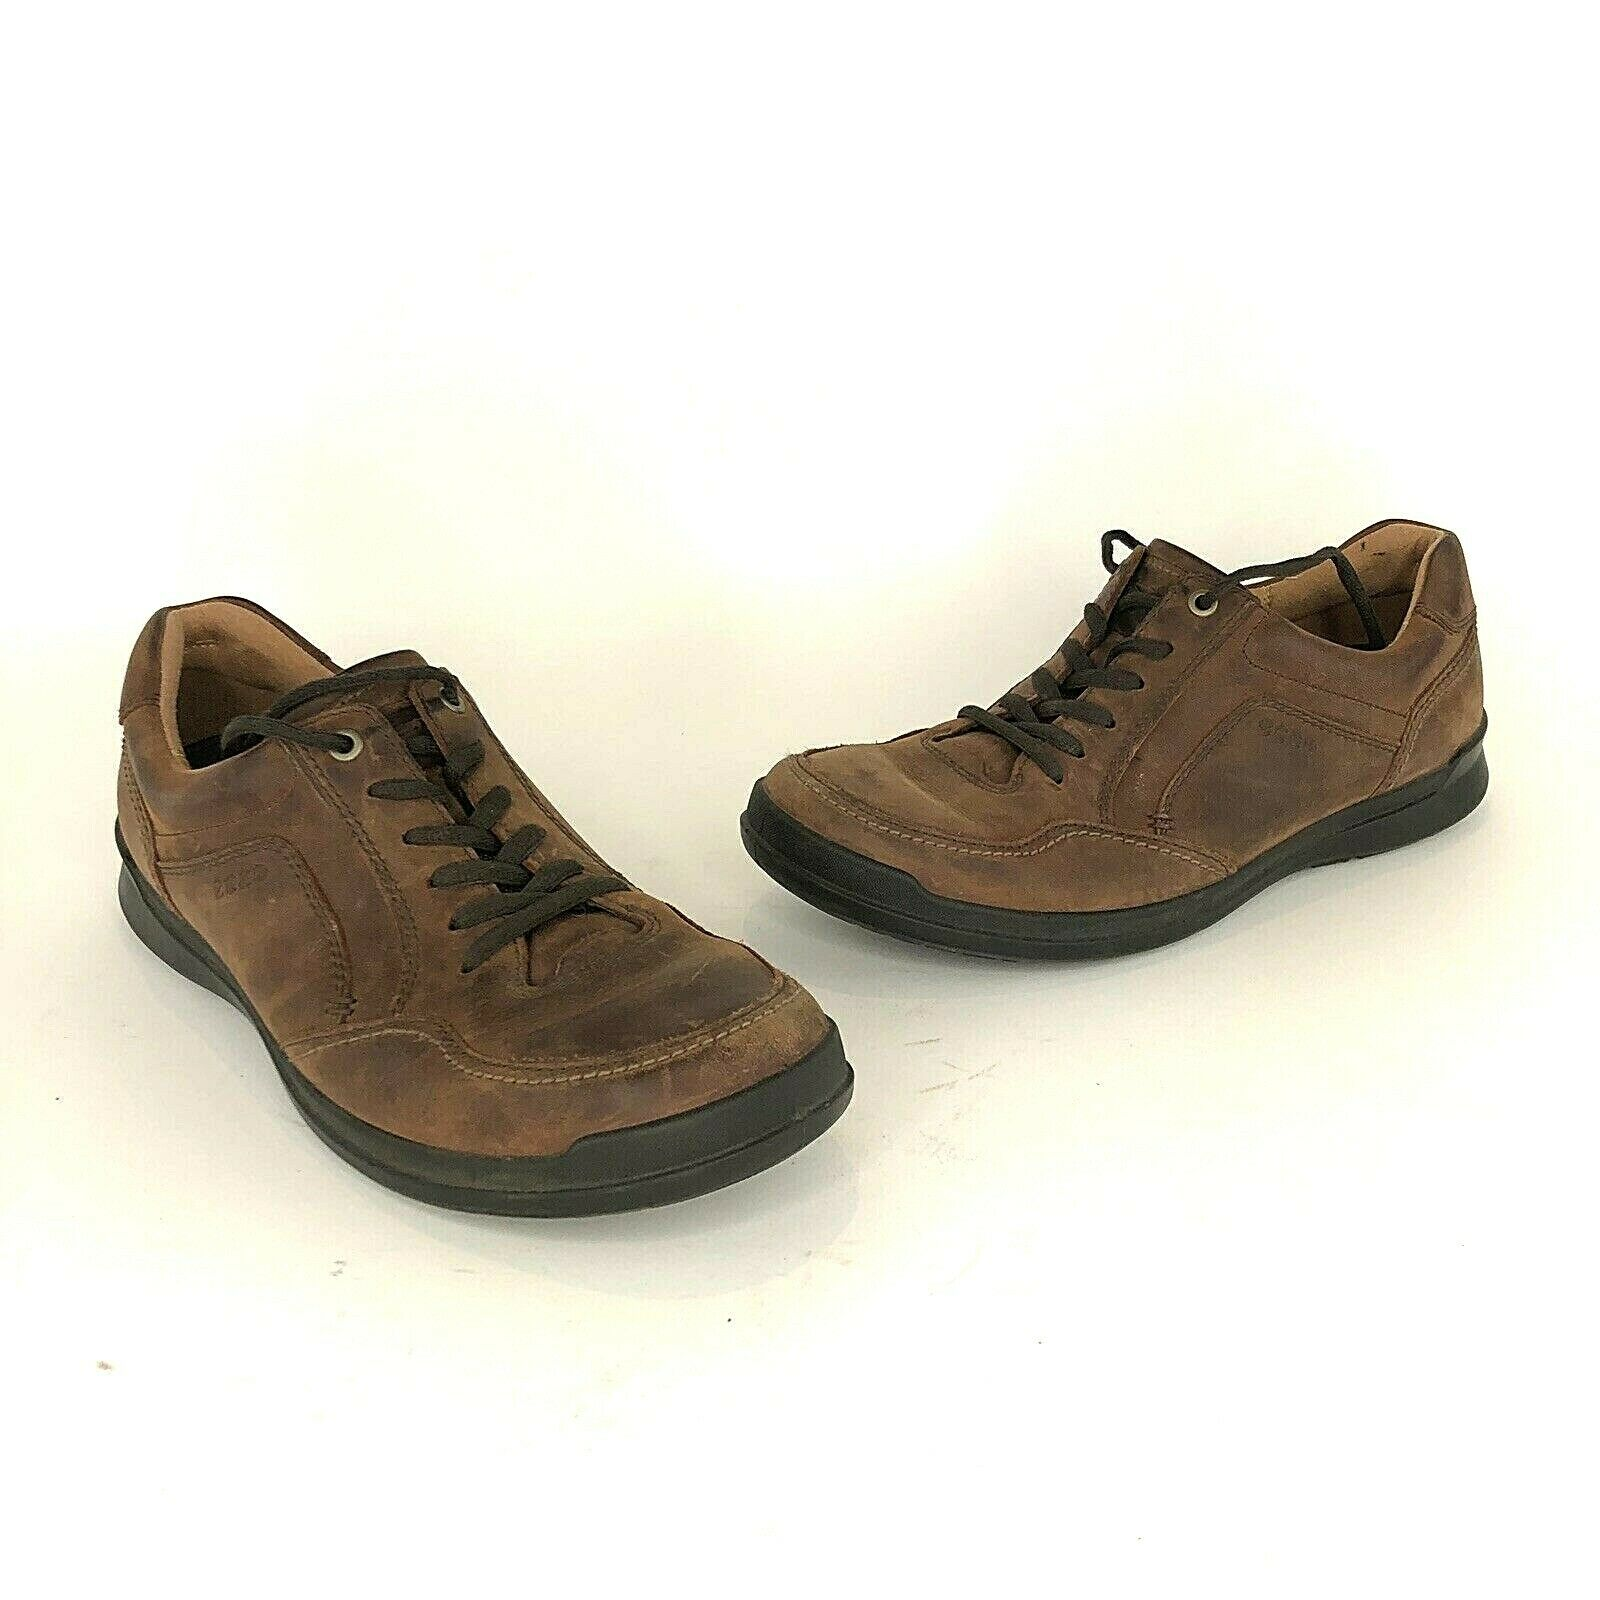 Ecco Mens Size 44 Brown Leather Oxford Lace Up shoes